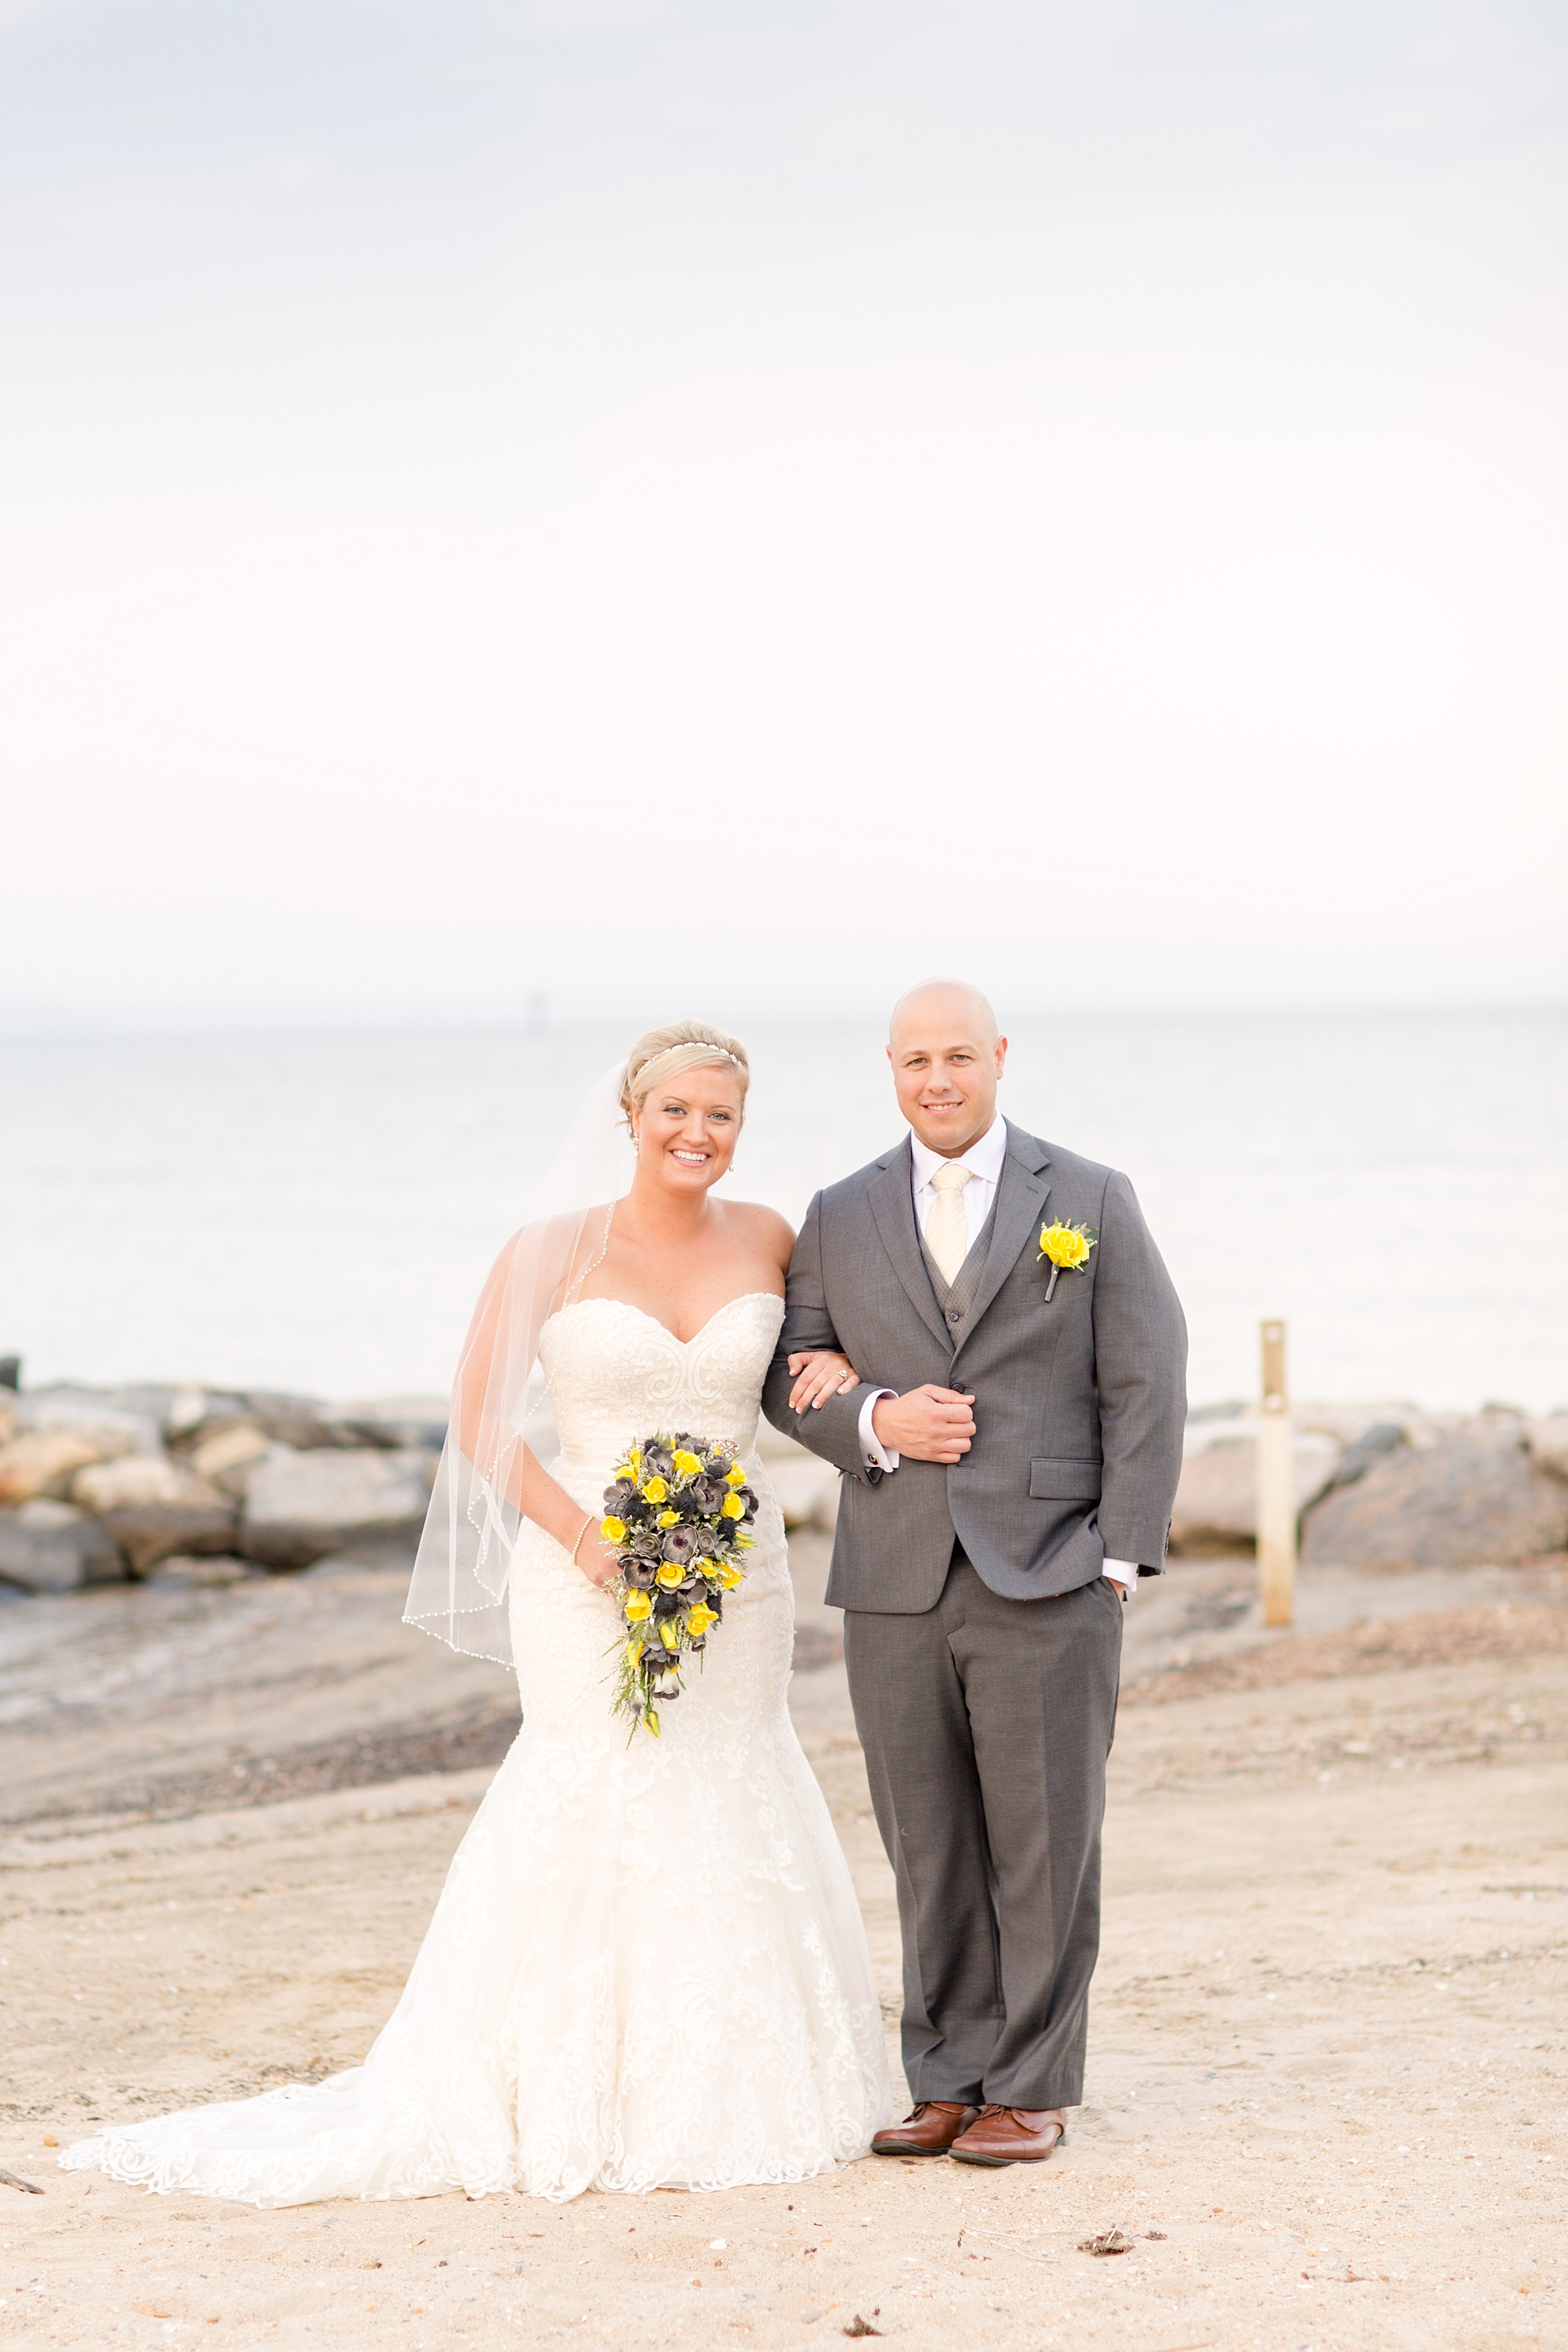 Mankiewicz 3. Bride & Groom Portraits-838_anna grace photography annapolis maryland wedding photographer herrington on the bay wedding photo.jpg